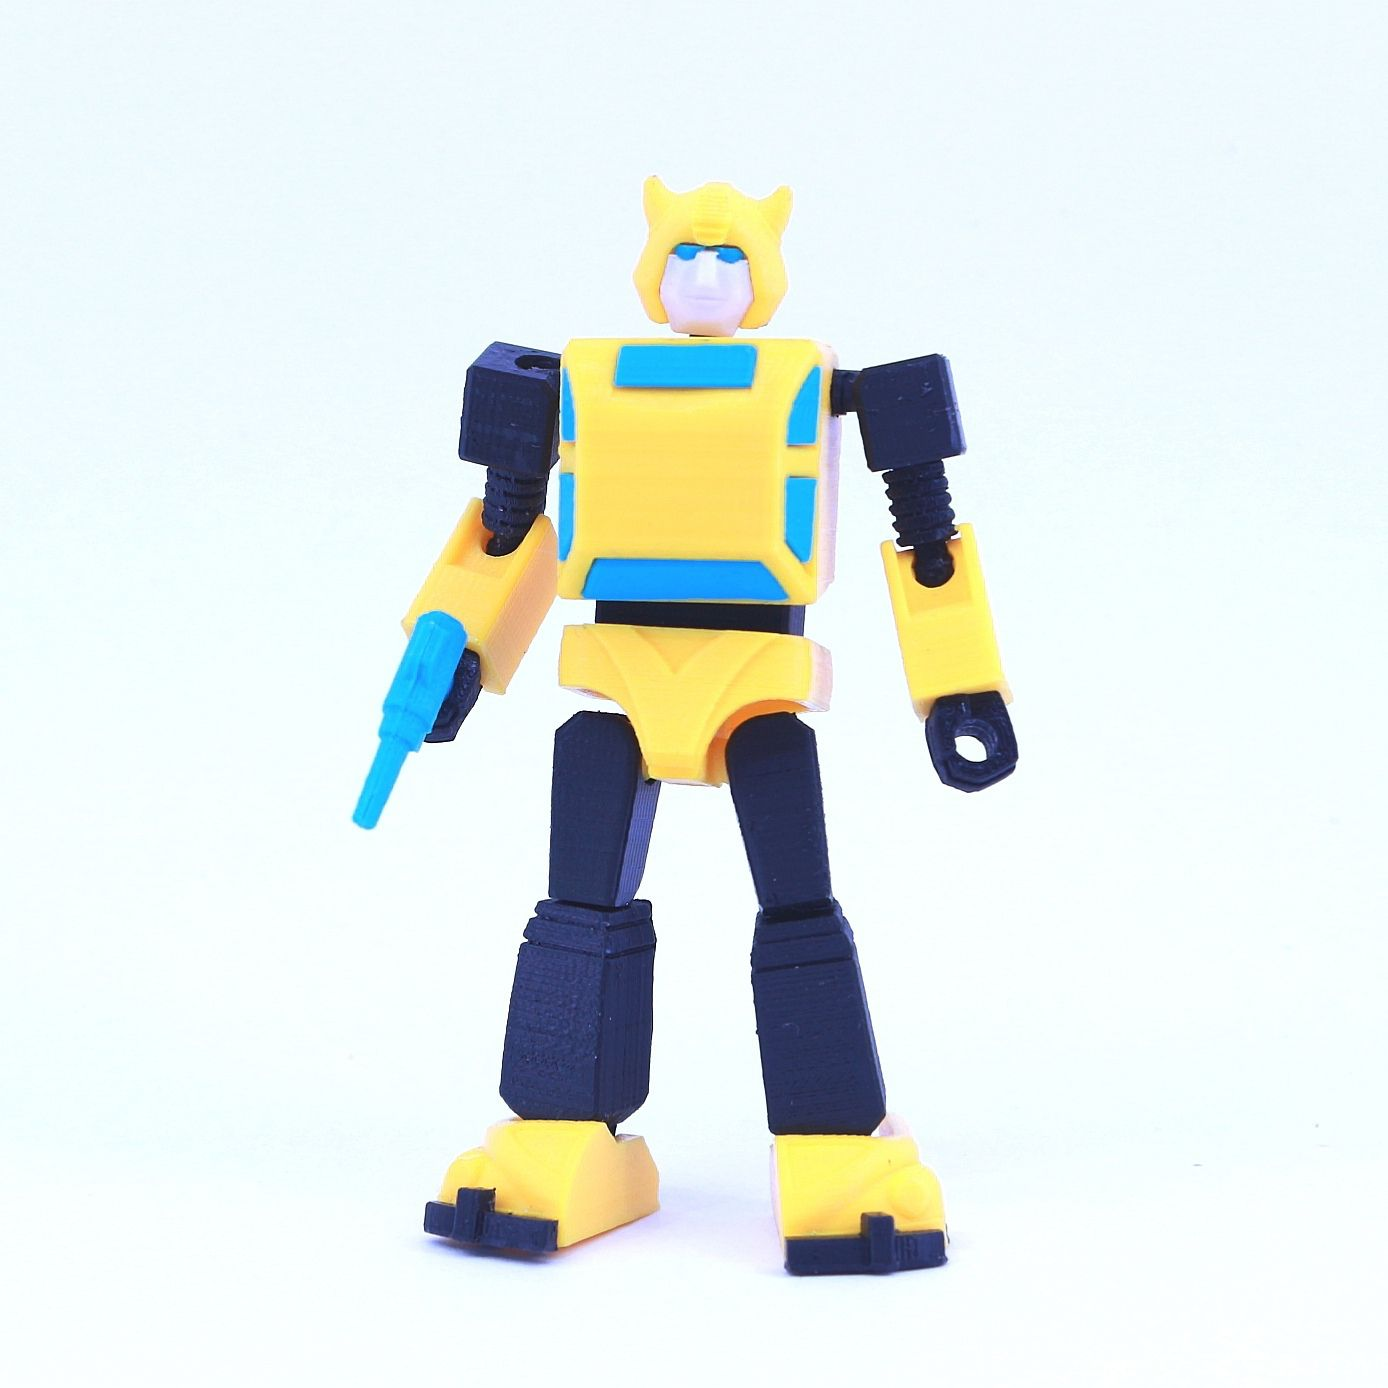 bee1.jpg Download free STL file ARTICULATED G1 TRANSFORMERS BUMBLEBEE - NO SUPPORT • 3D print template, Toymakr3D